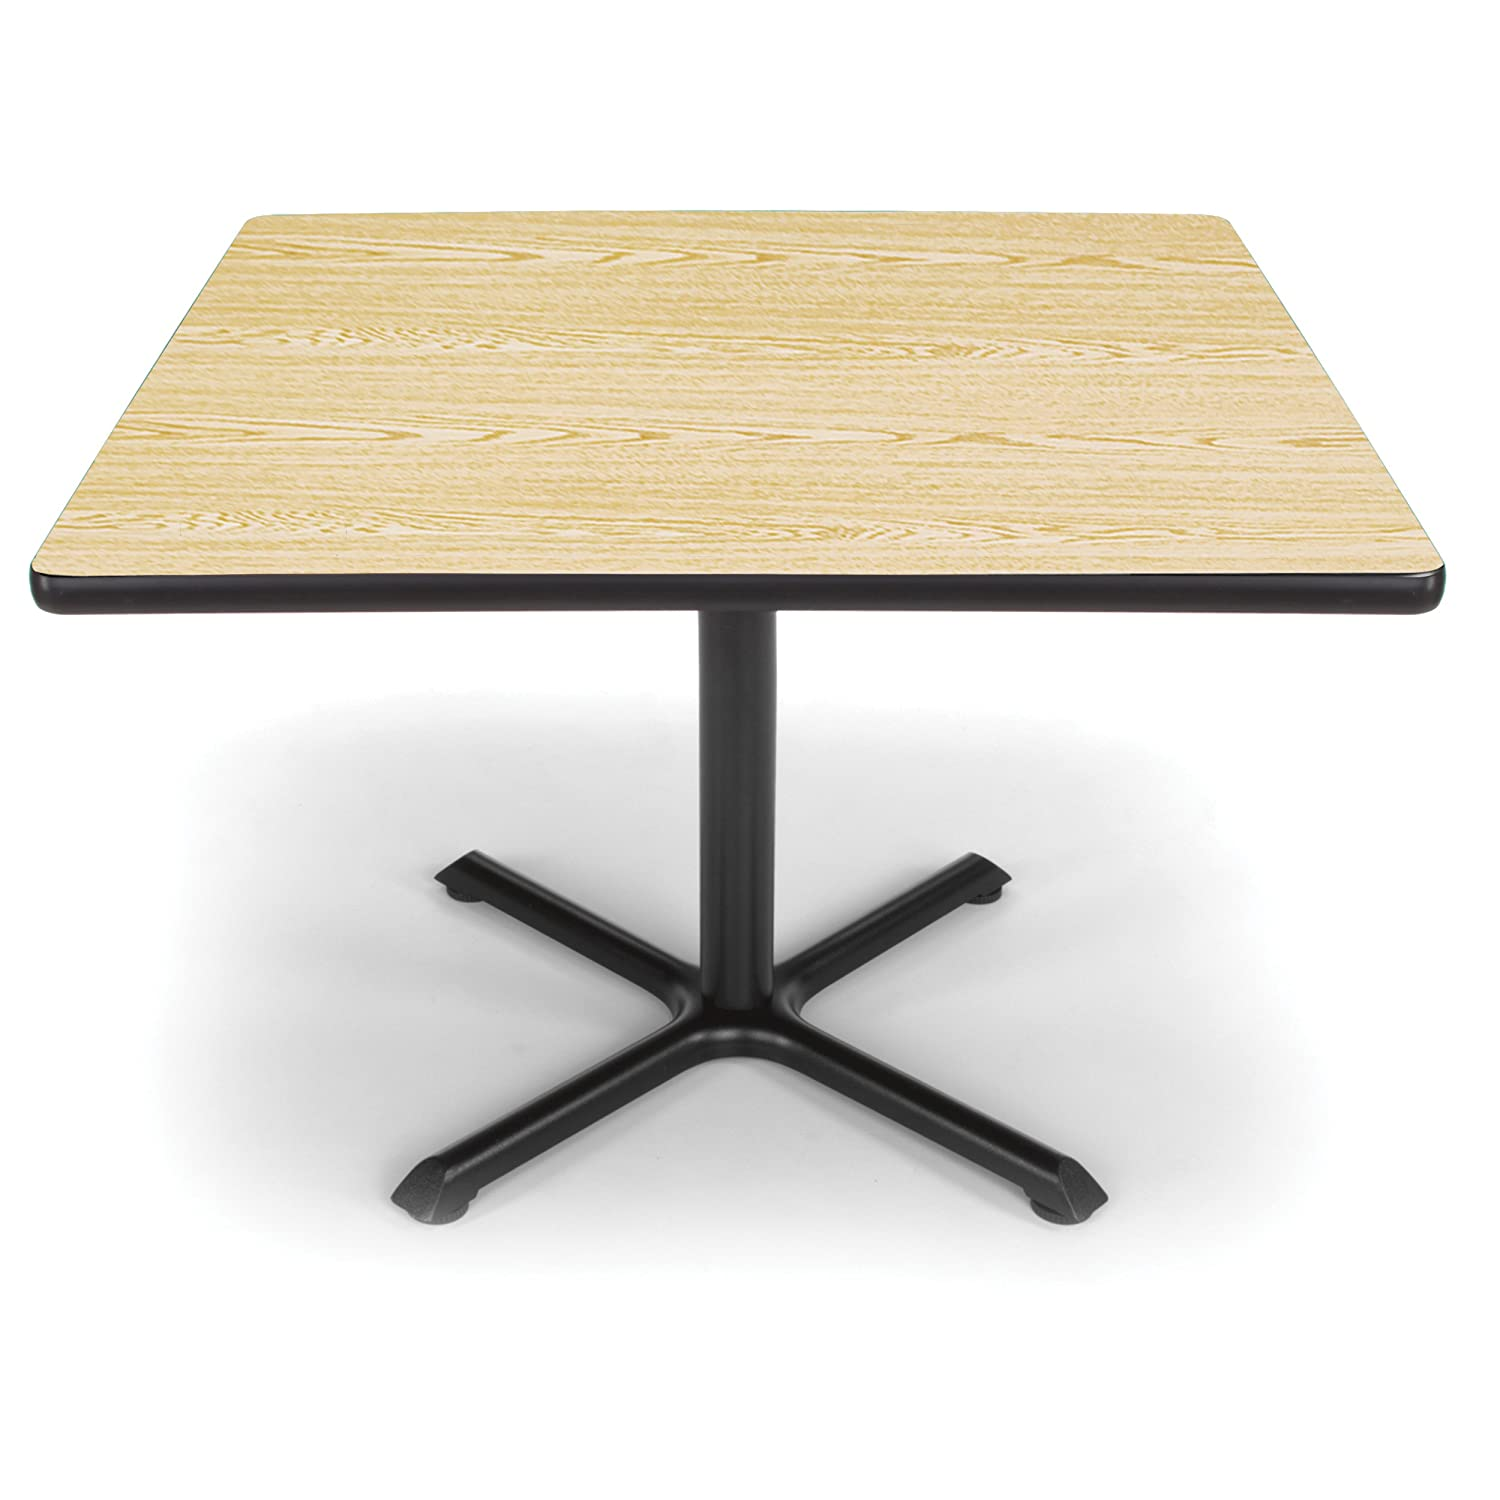 OFM XT36SQ-CHY Square Multi-Purpose Table, 36